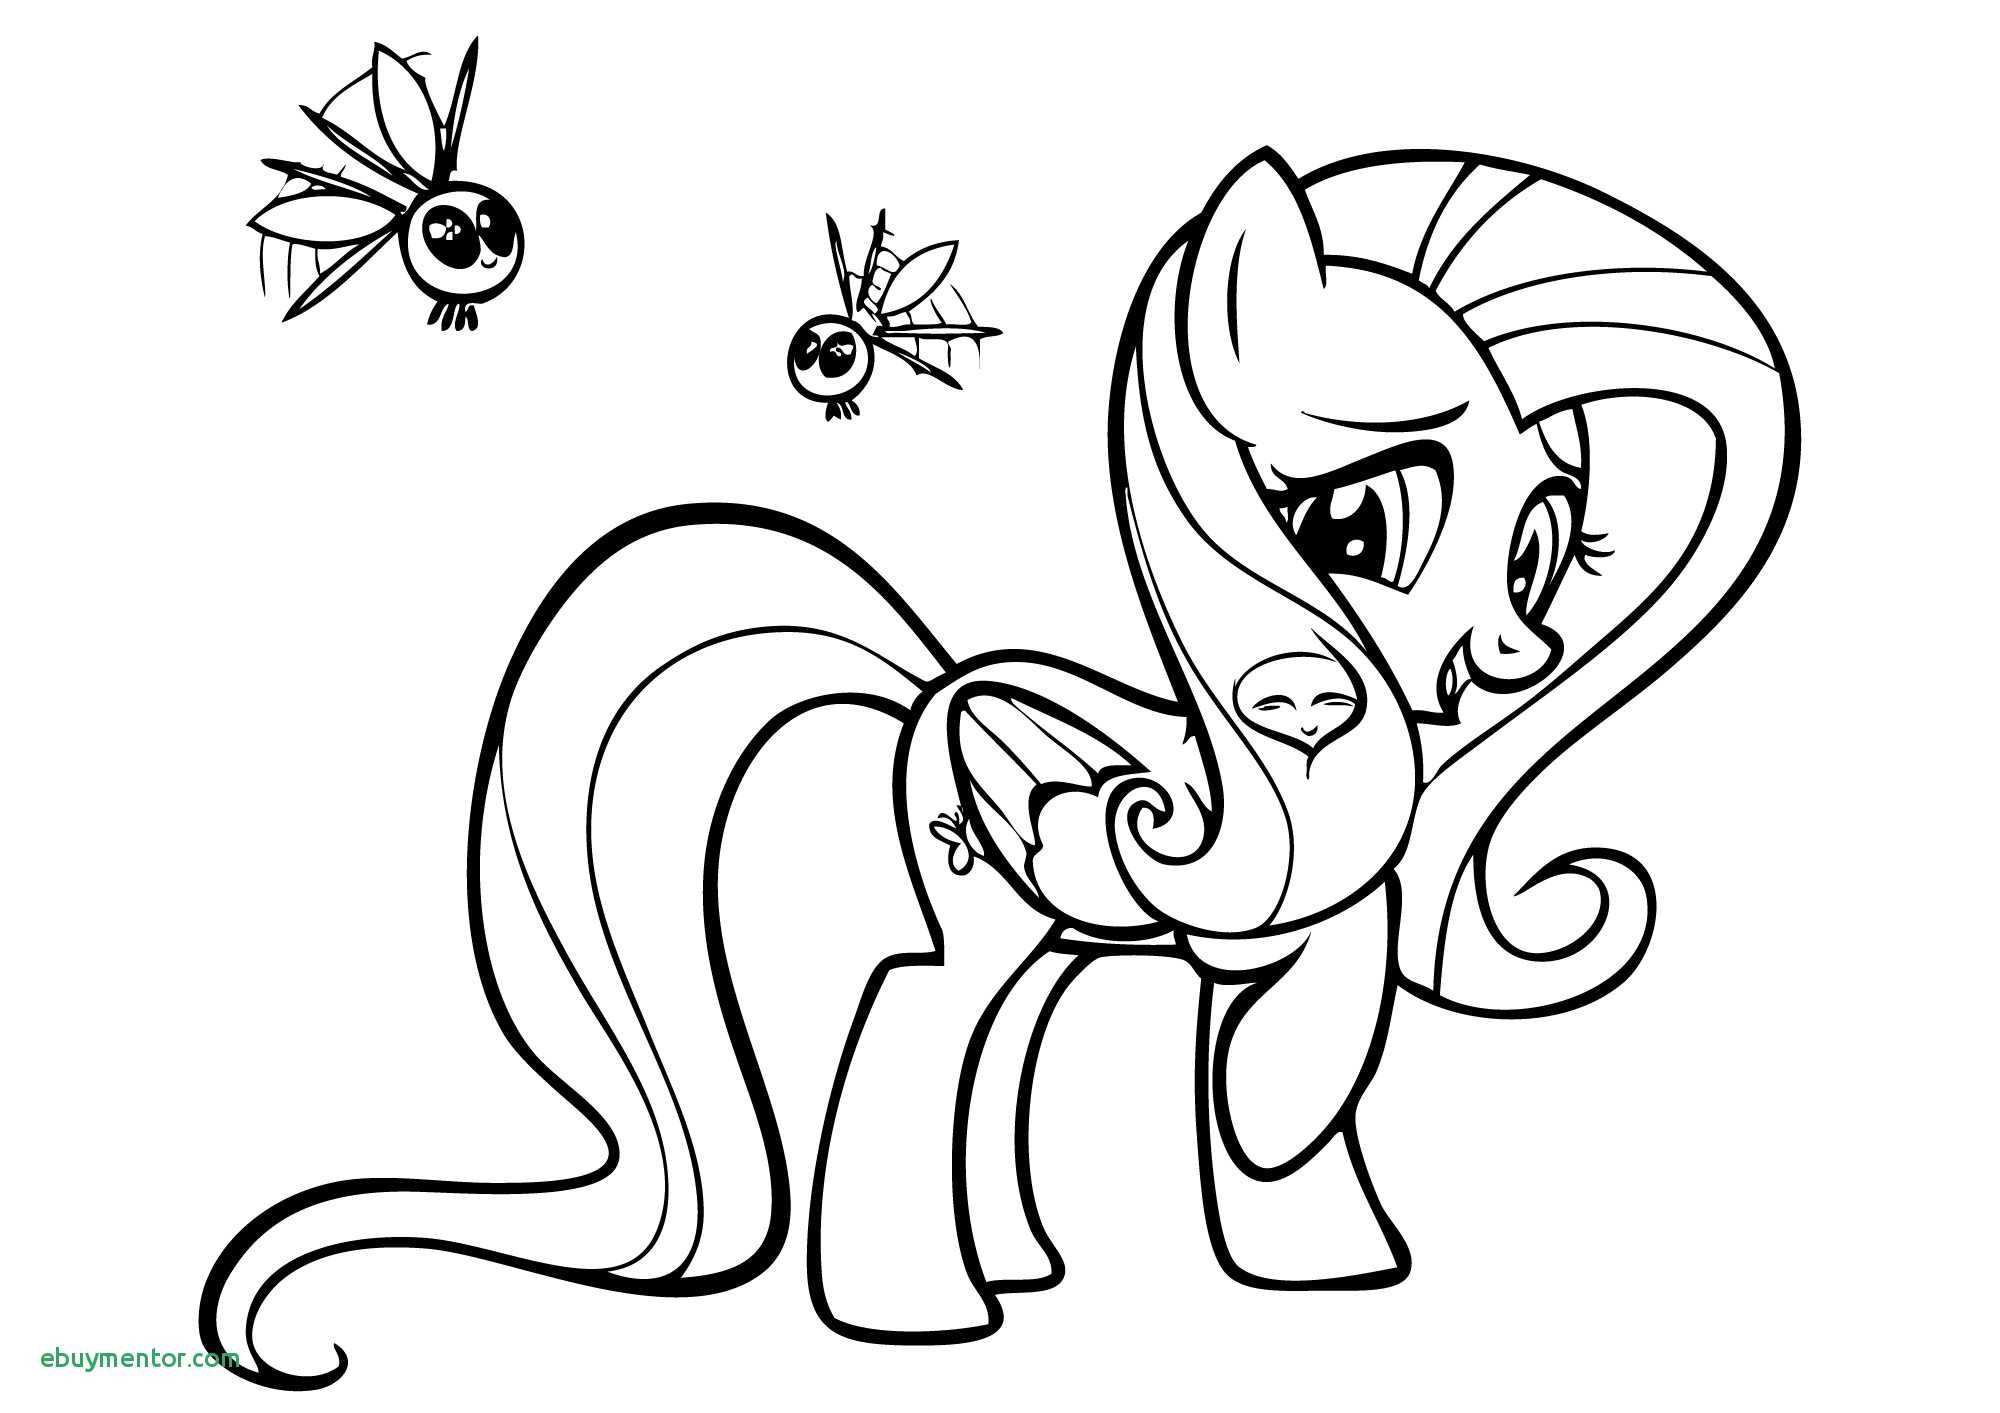 Ausmalbilder My Little Pony Applejack Frisch Fluttershy Coloring Pages Elegant My Little Pony Friendship is Magic Galerie